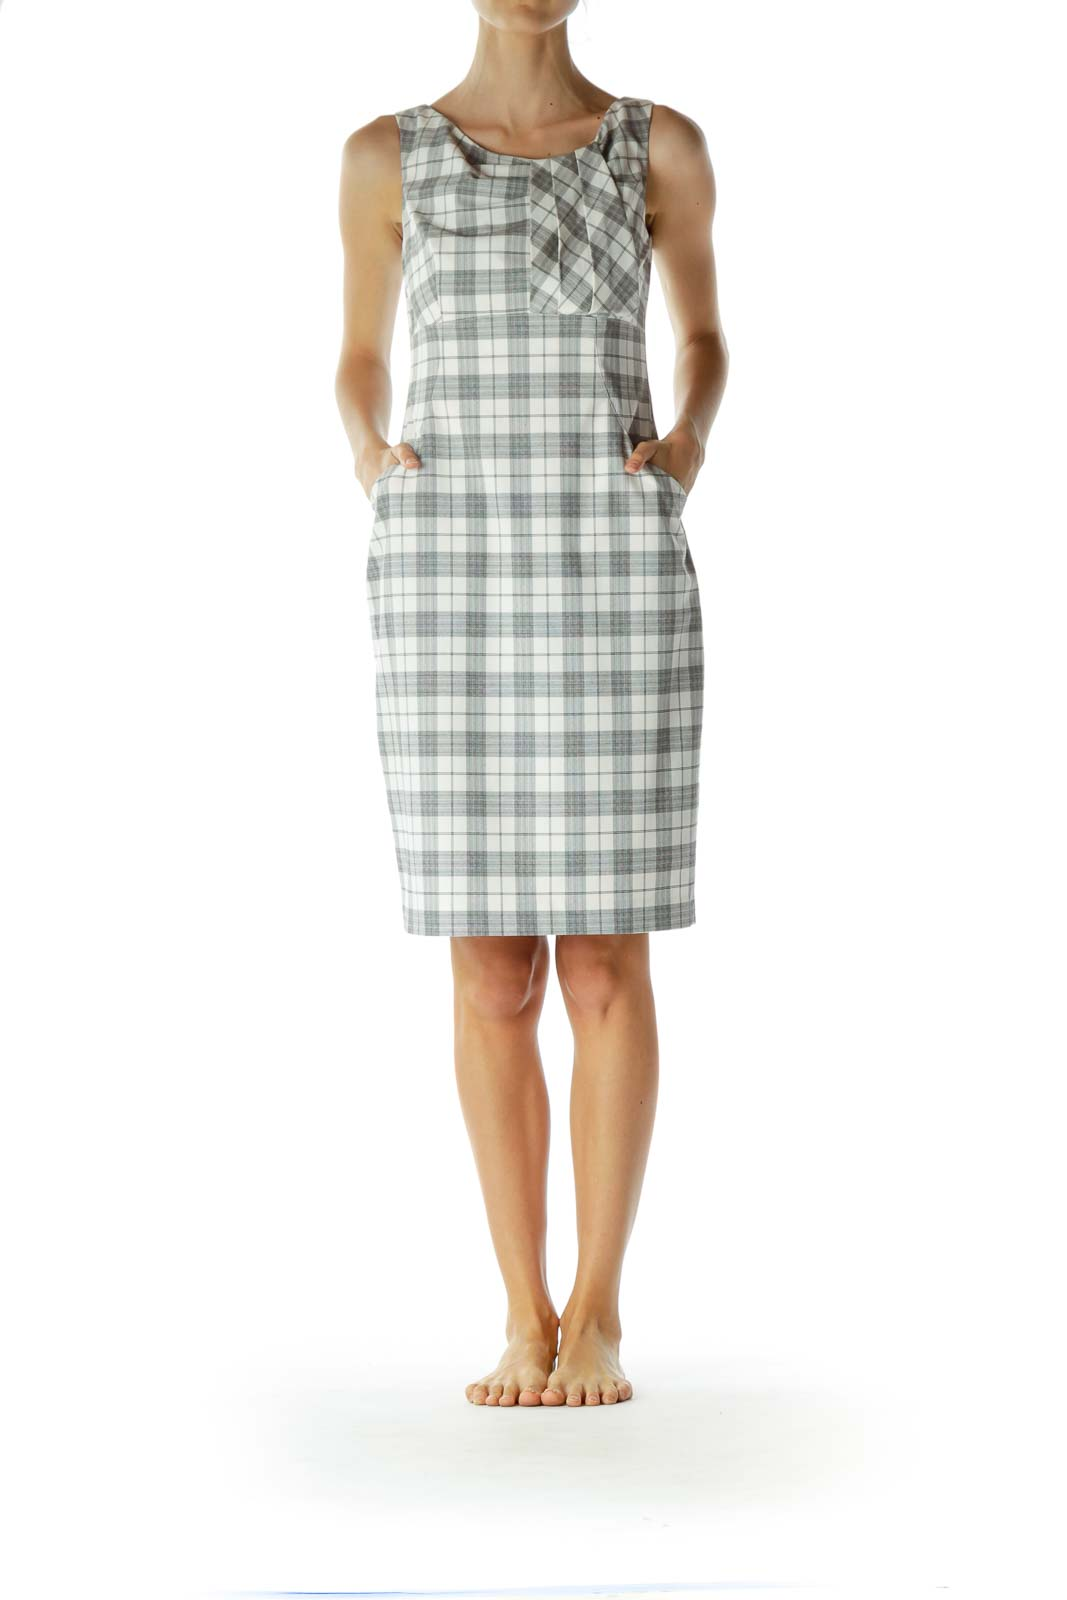 Black and Cream Plaid Work Dress